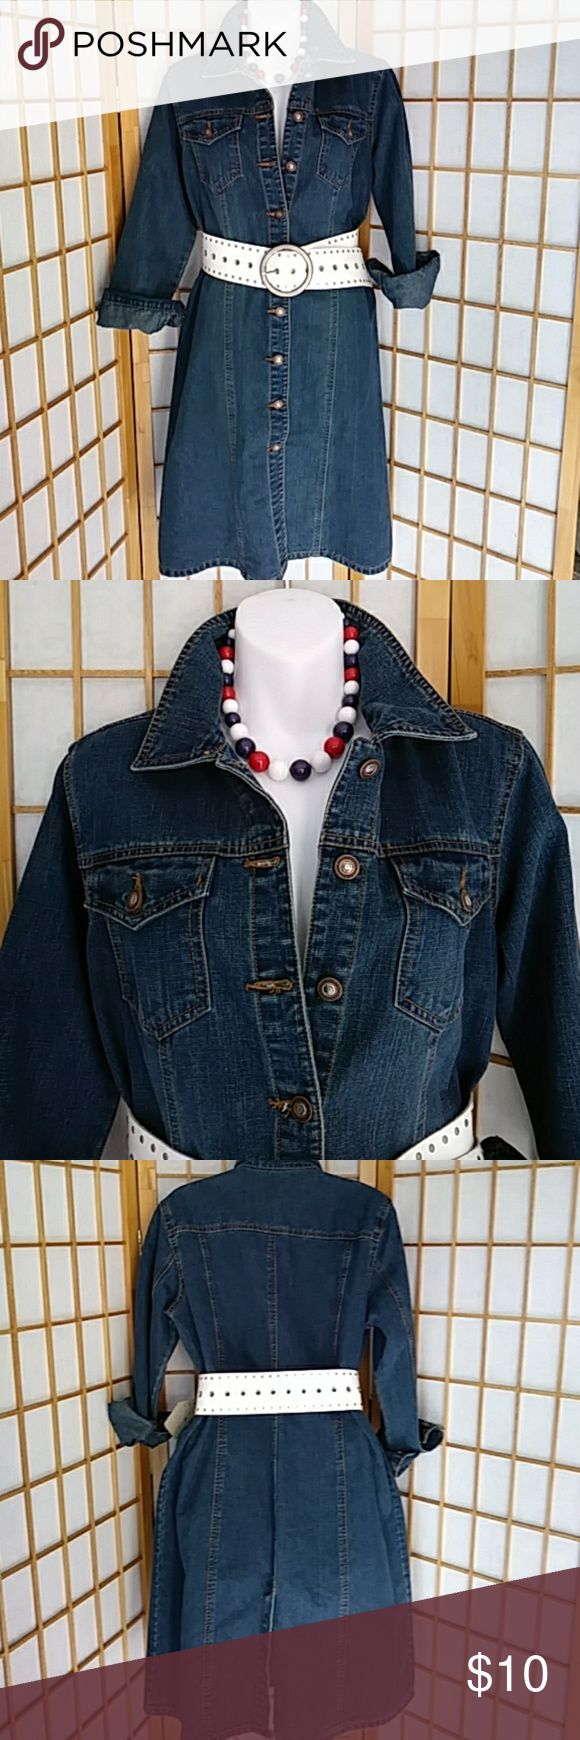 Denim dress / coat Very versatile denim dress that come be worn as a coat, button front in good condition. Cotton & spandex blend Faded Glory Jeans